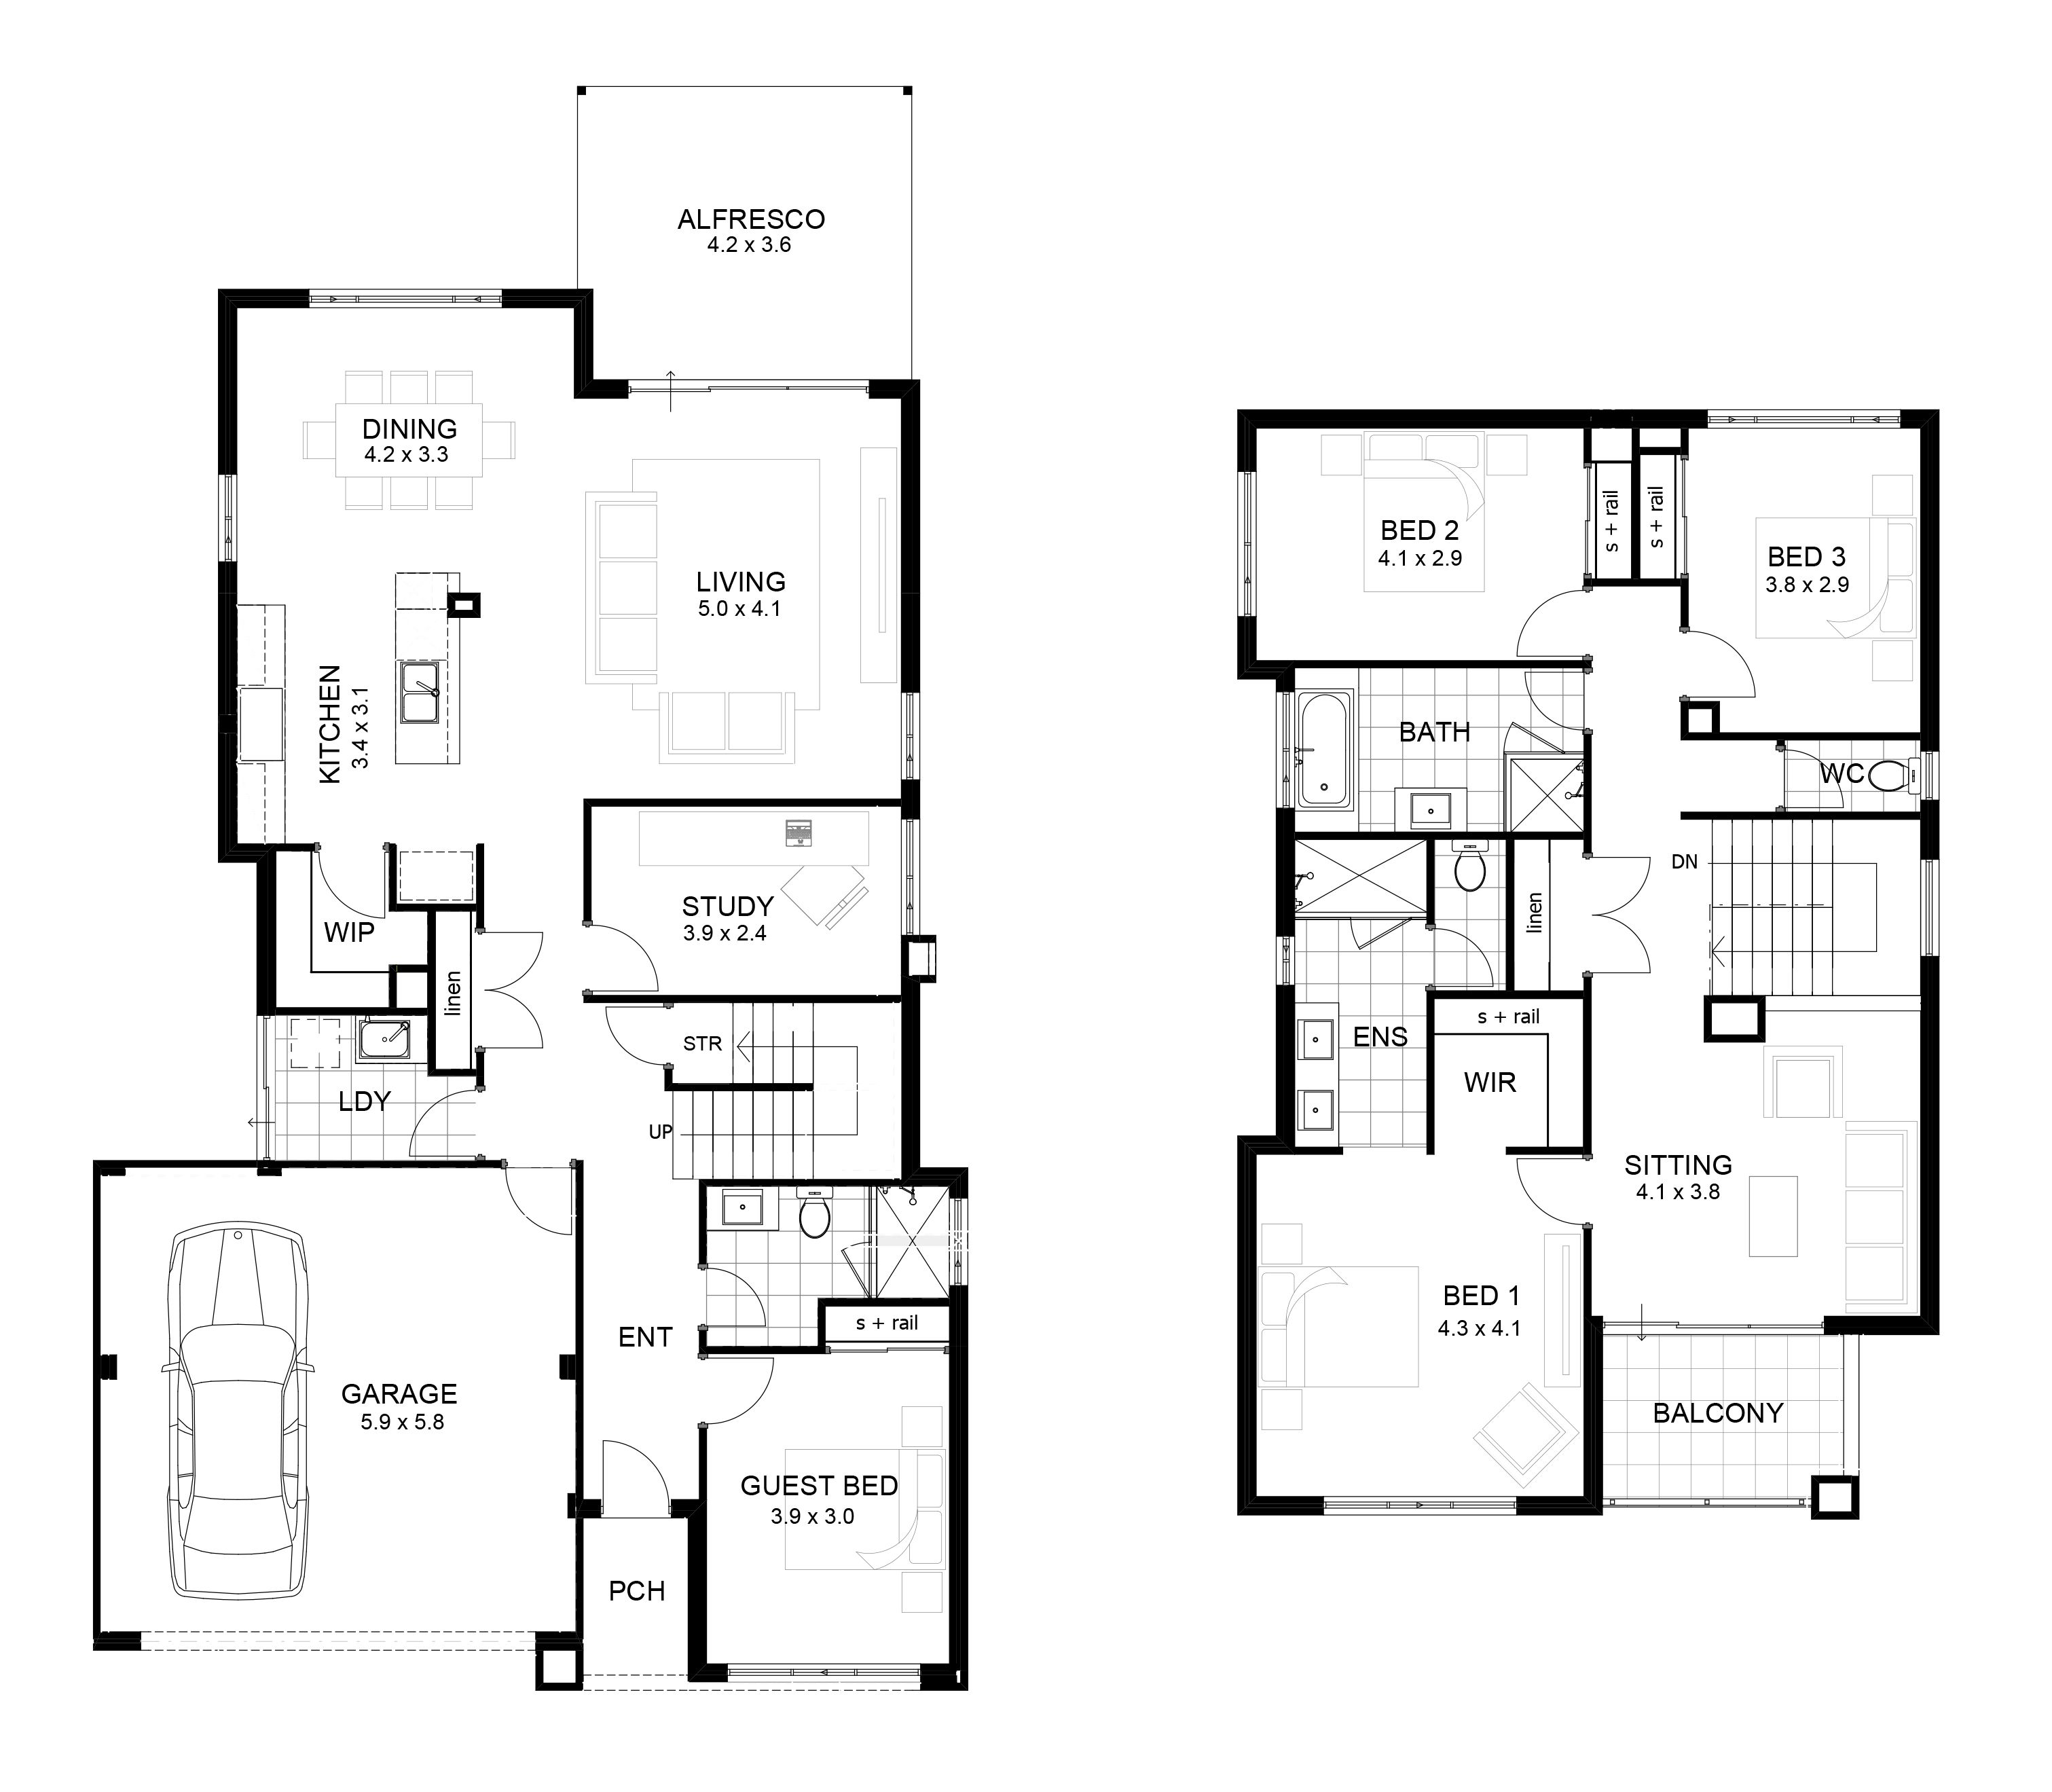 1000+ images about House Plans on Pinterest - ^